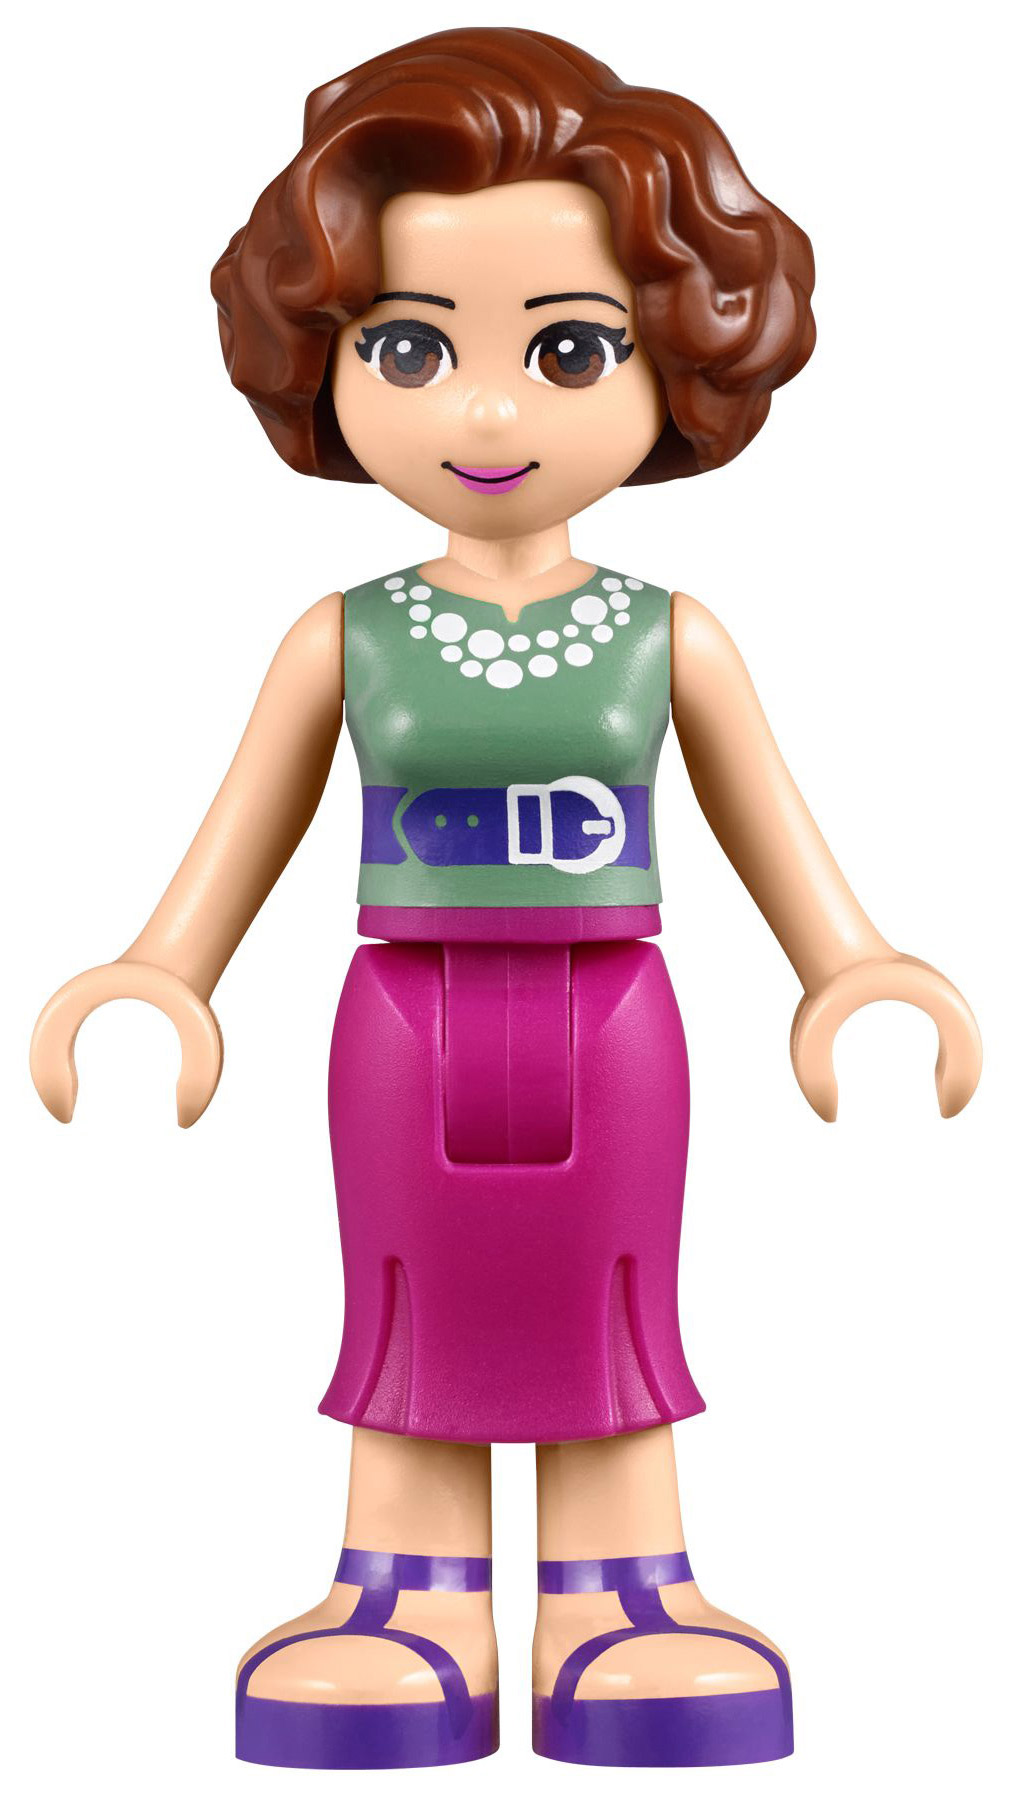 Charlotte Lego Friends Wiki Fandom Powered By Wikia